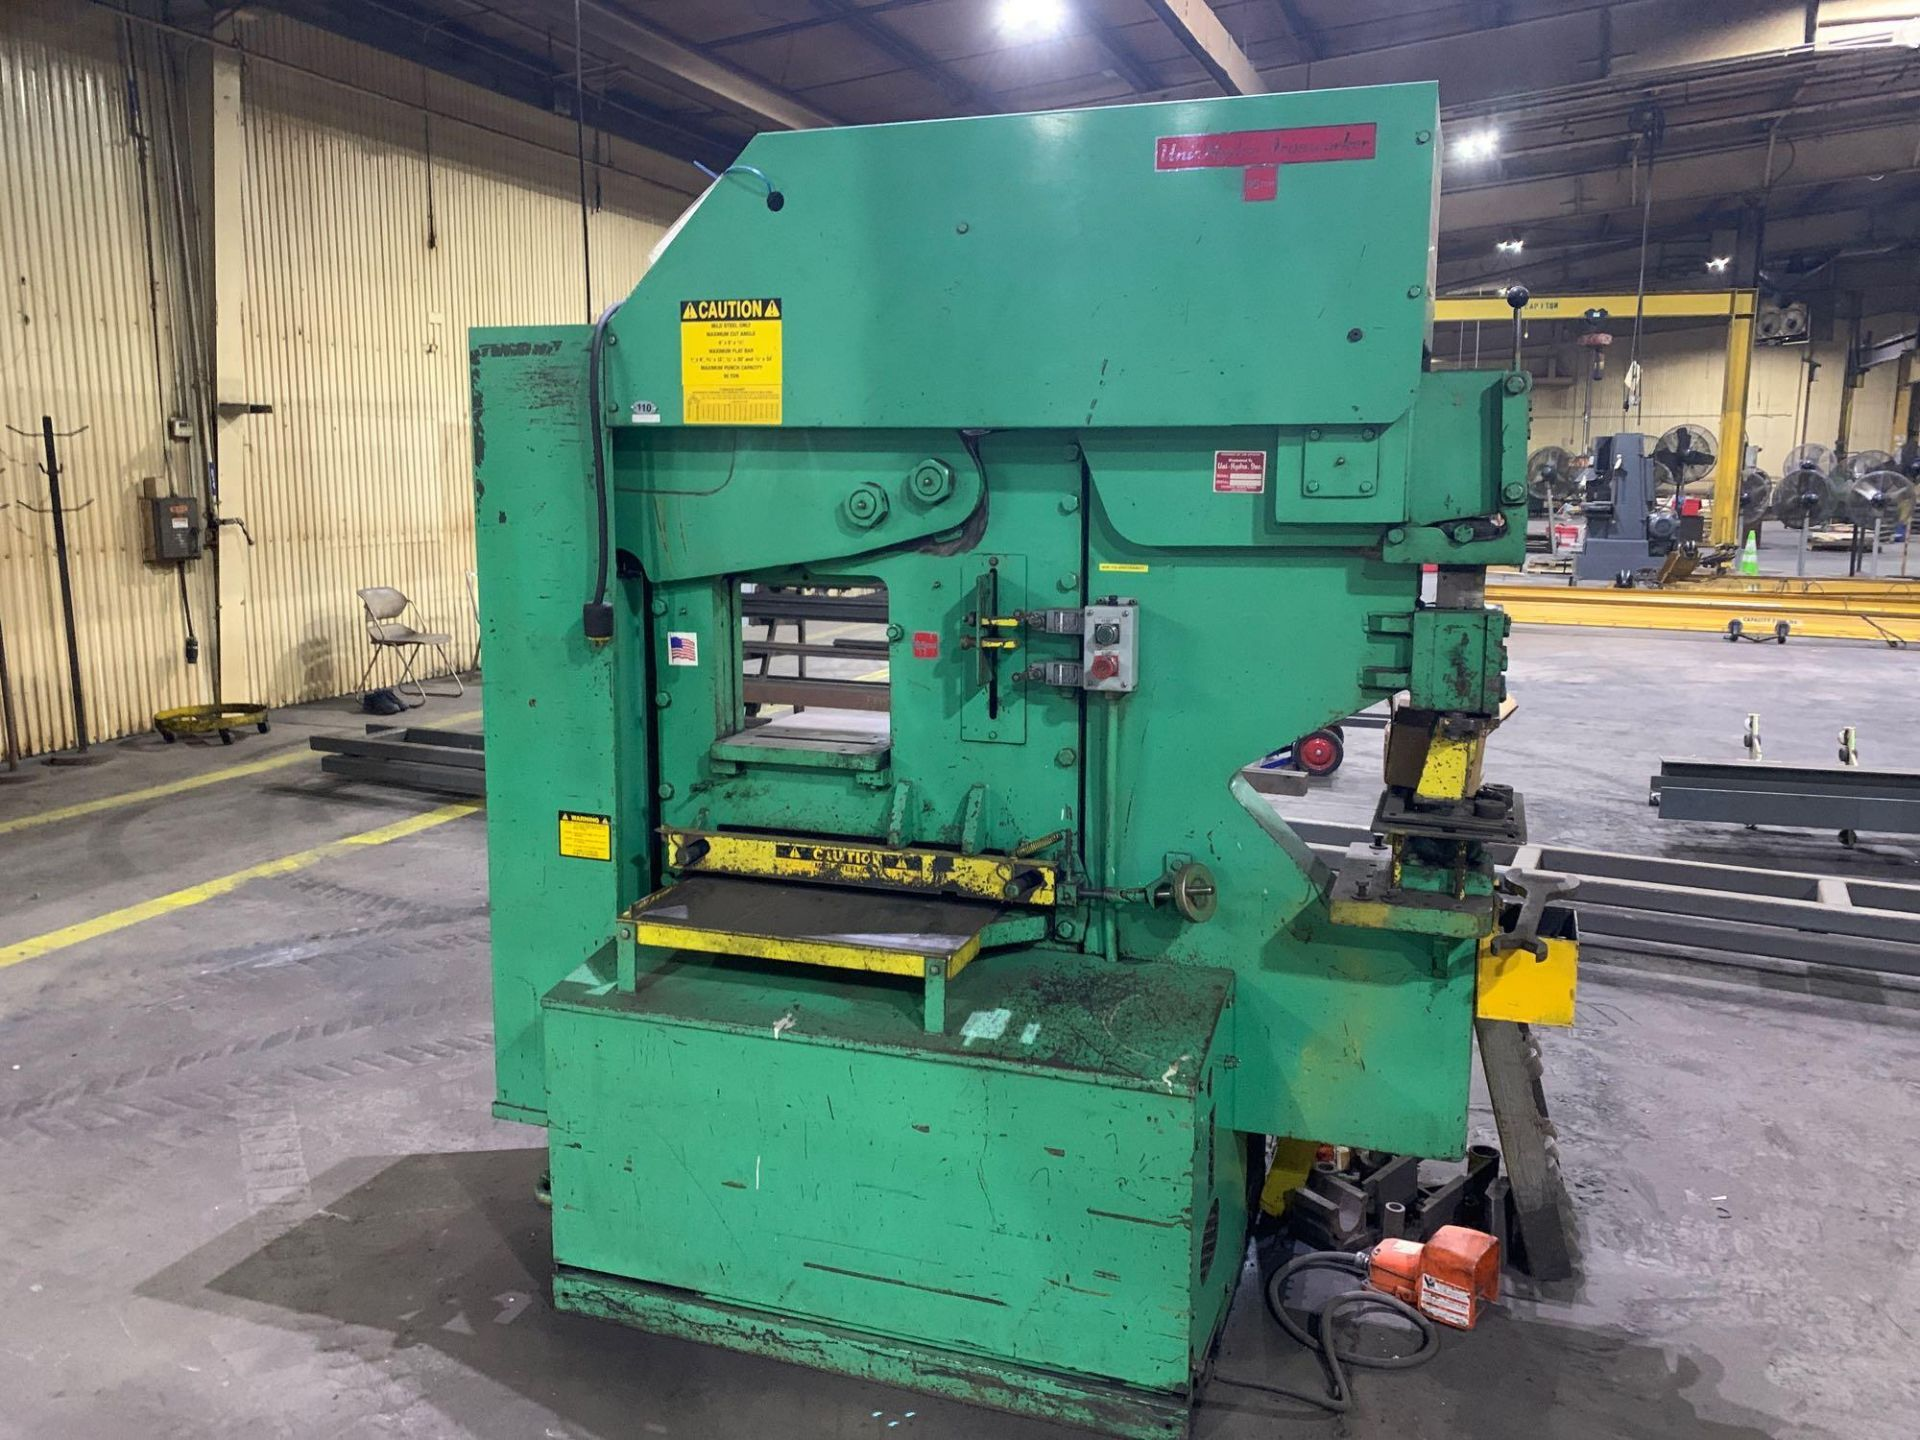 UNI-HYDRO 95-24 HYDRAULIC IRONWORKER Model: 95-24 Serial Number: 3P9560 Capacity: 95 Ton Punching Th - Image 2 of 18